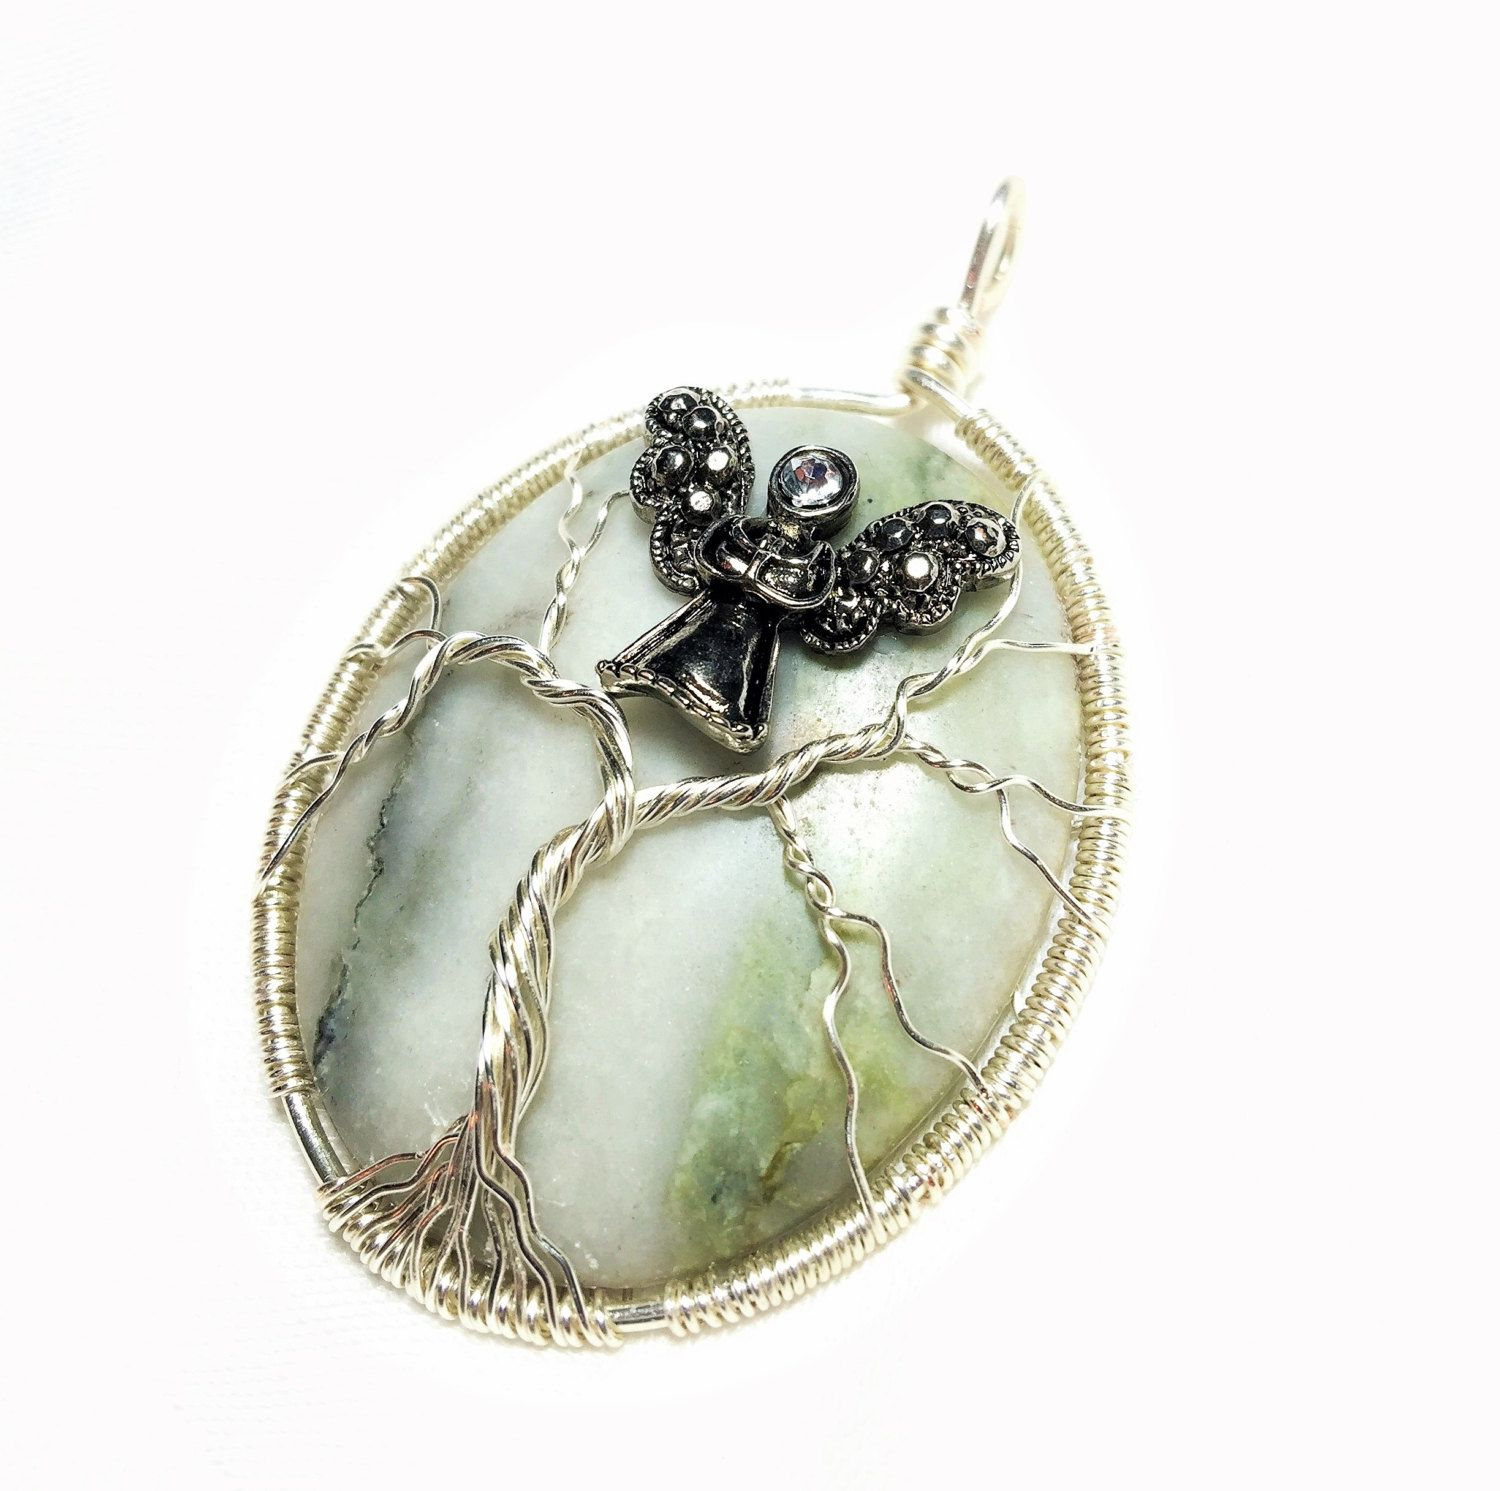 db21e93ba Guardian Angel Tree-of-Life, Jungle Jasper Pendant, Rainforest Jasper Wire  Wrapped by SassyMyDesigns on Etsy